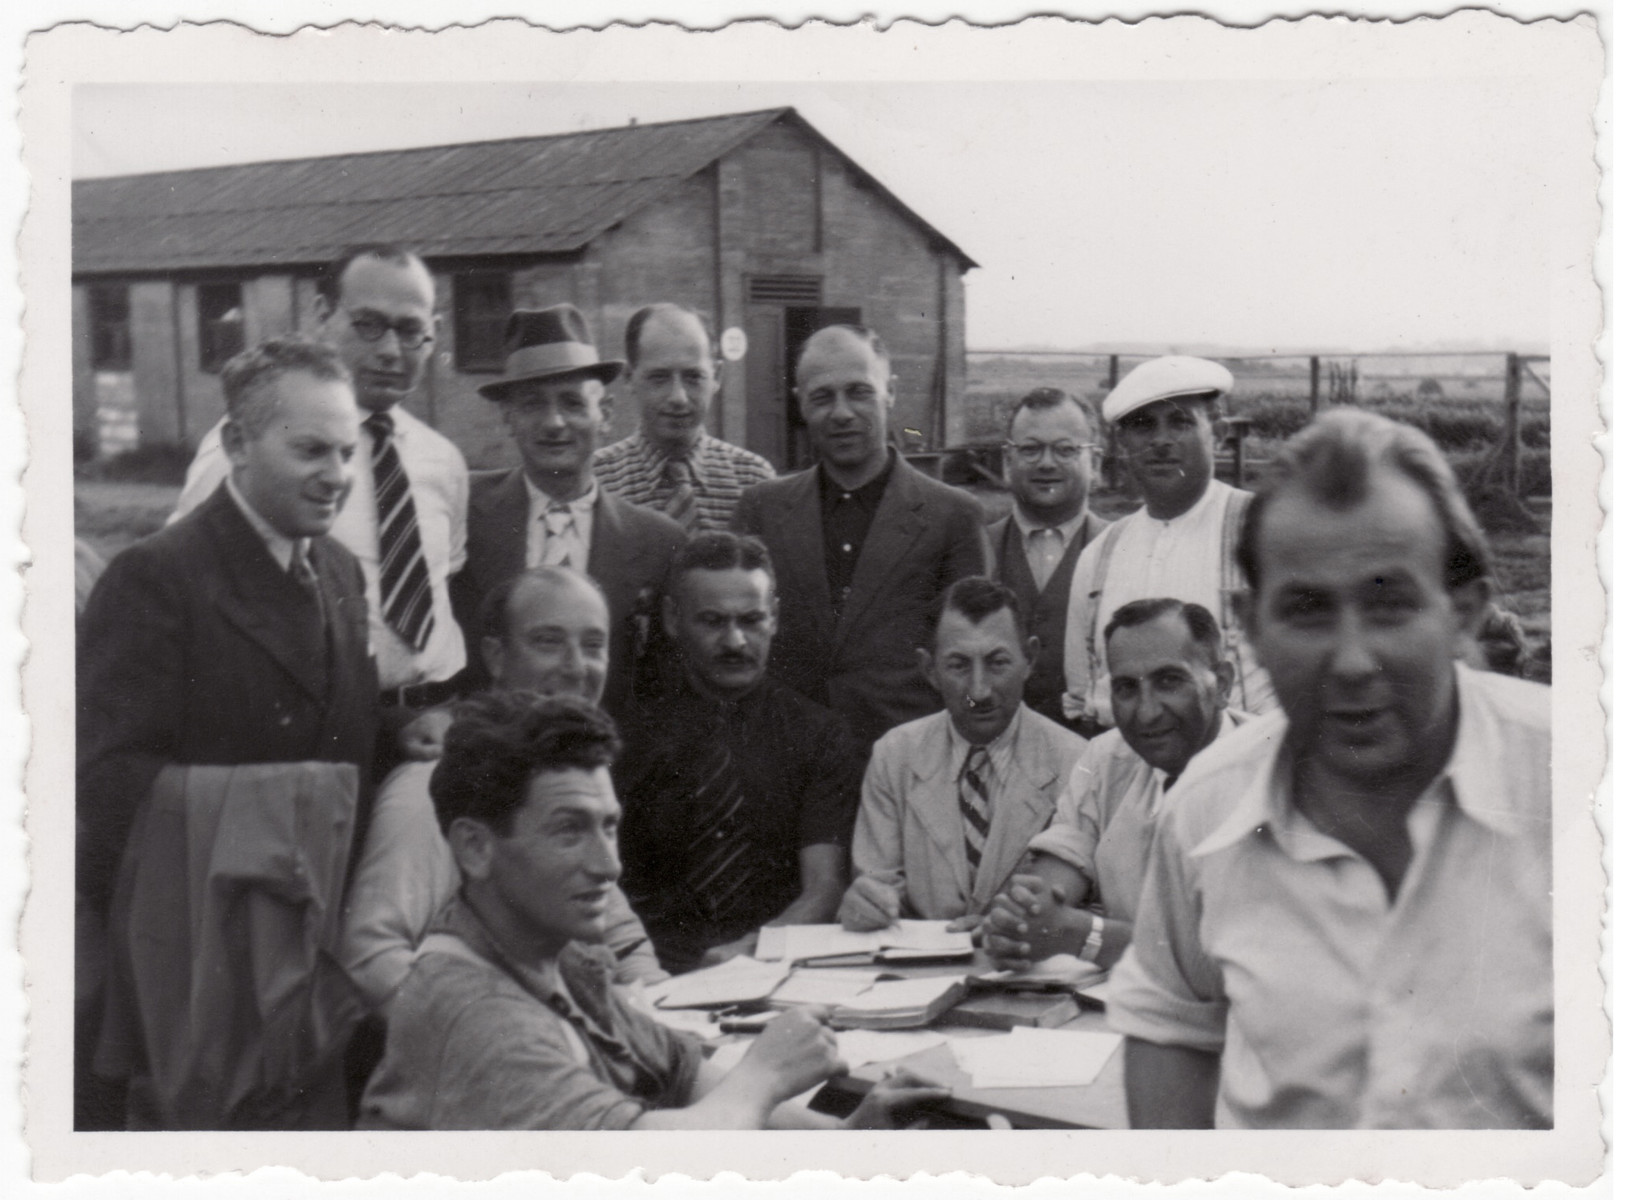 Jewish men gather around an outdoor table in the Kitchener refugee camp.  Siegfried Kulmann is pictured in the lower right wearing a white short sleeve shirt.